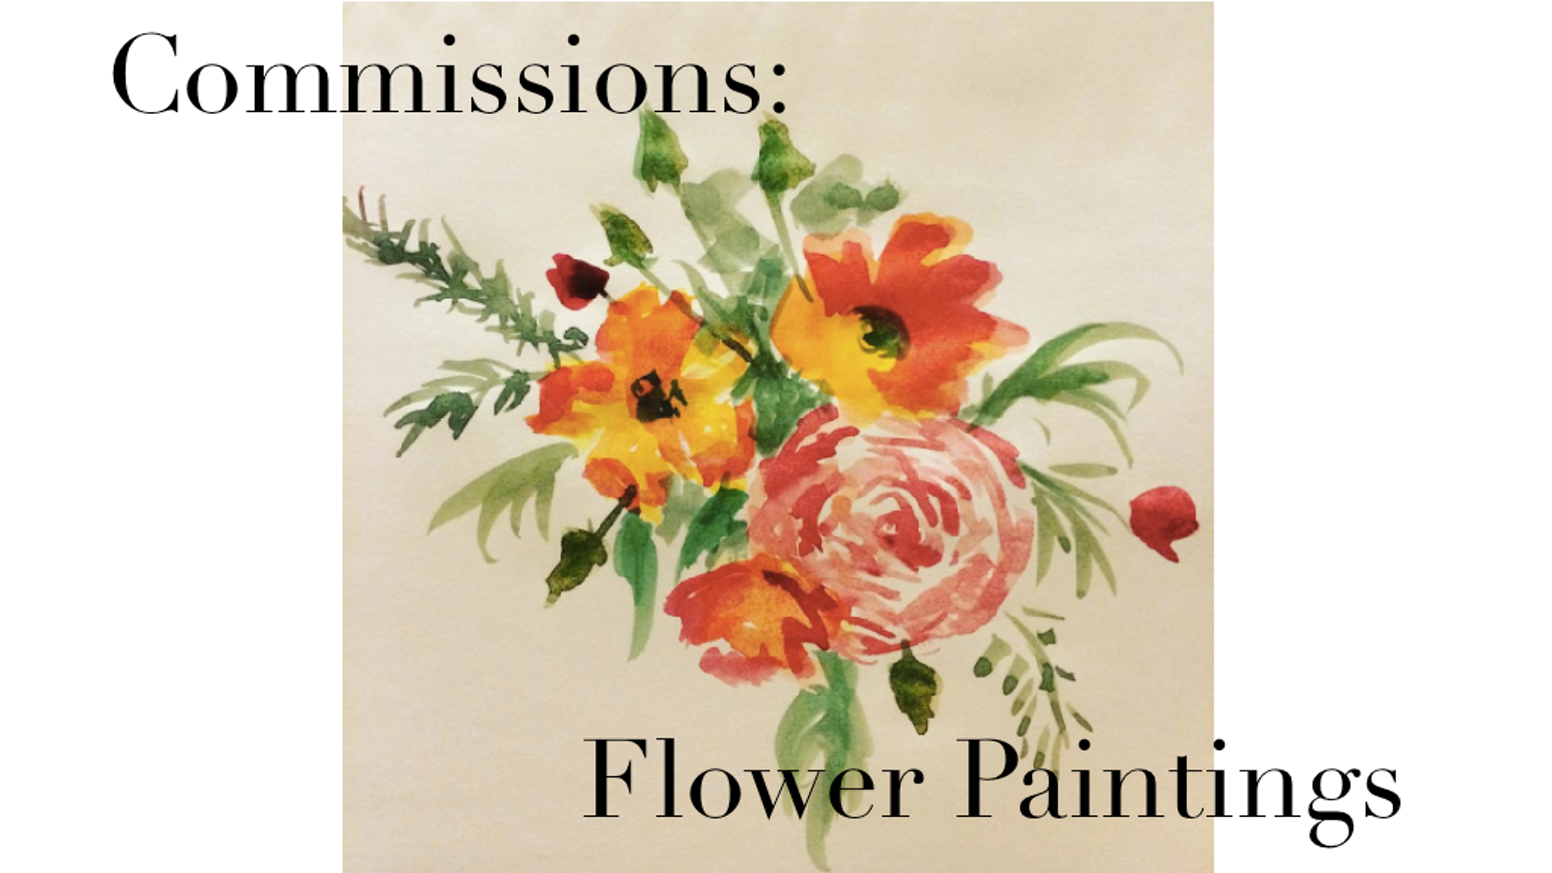 Commissions: Flower Paintings